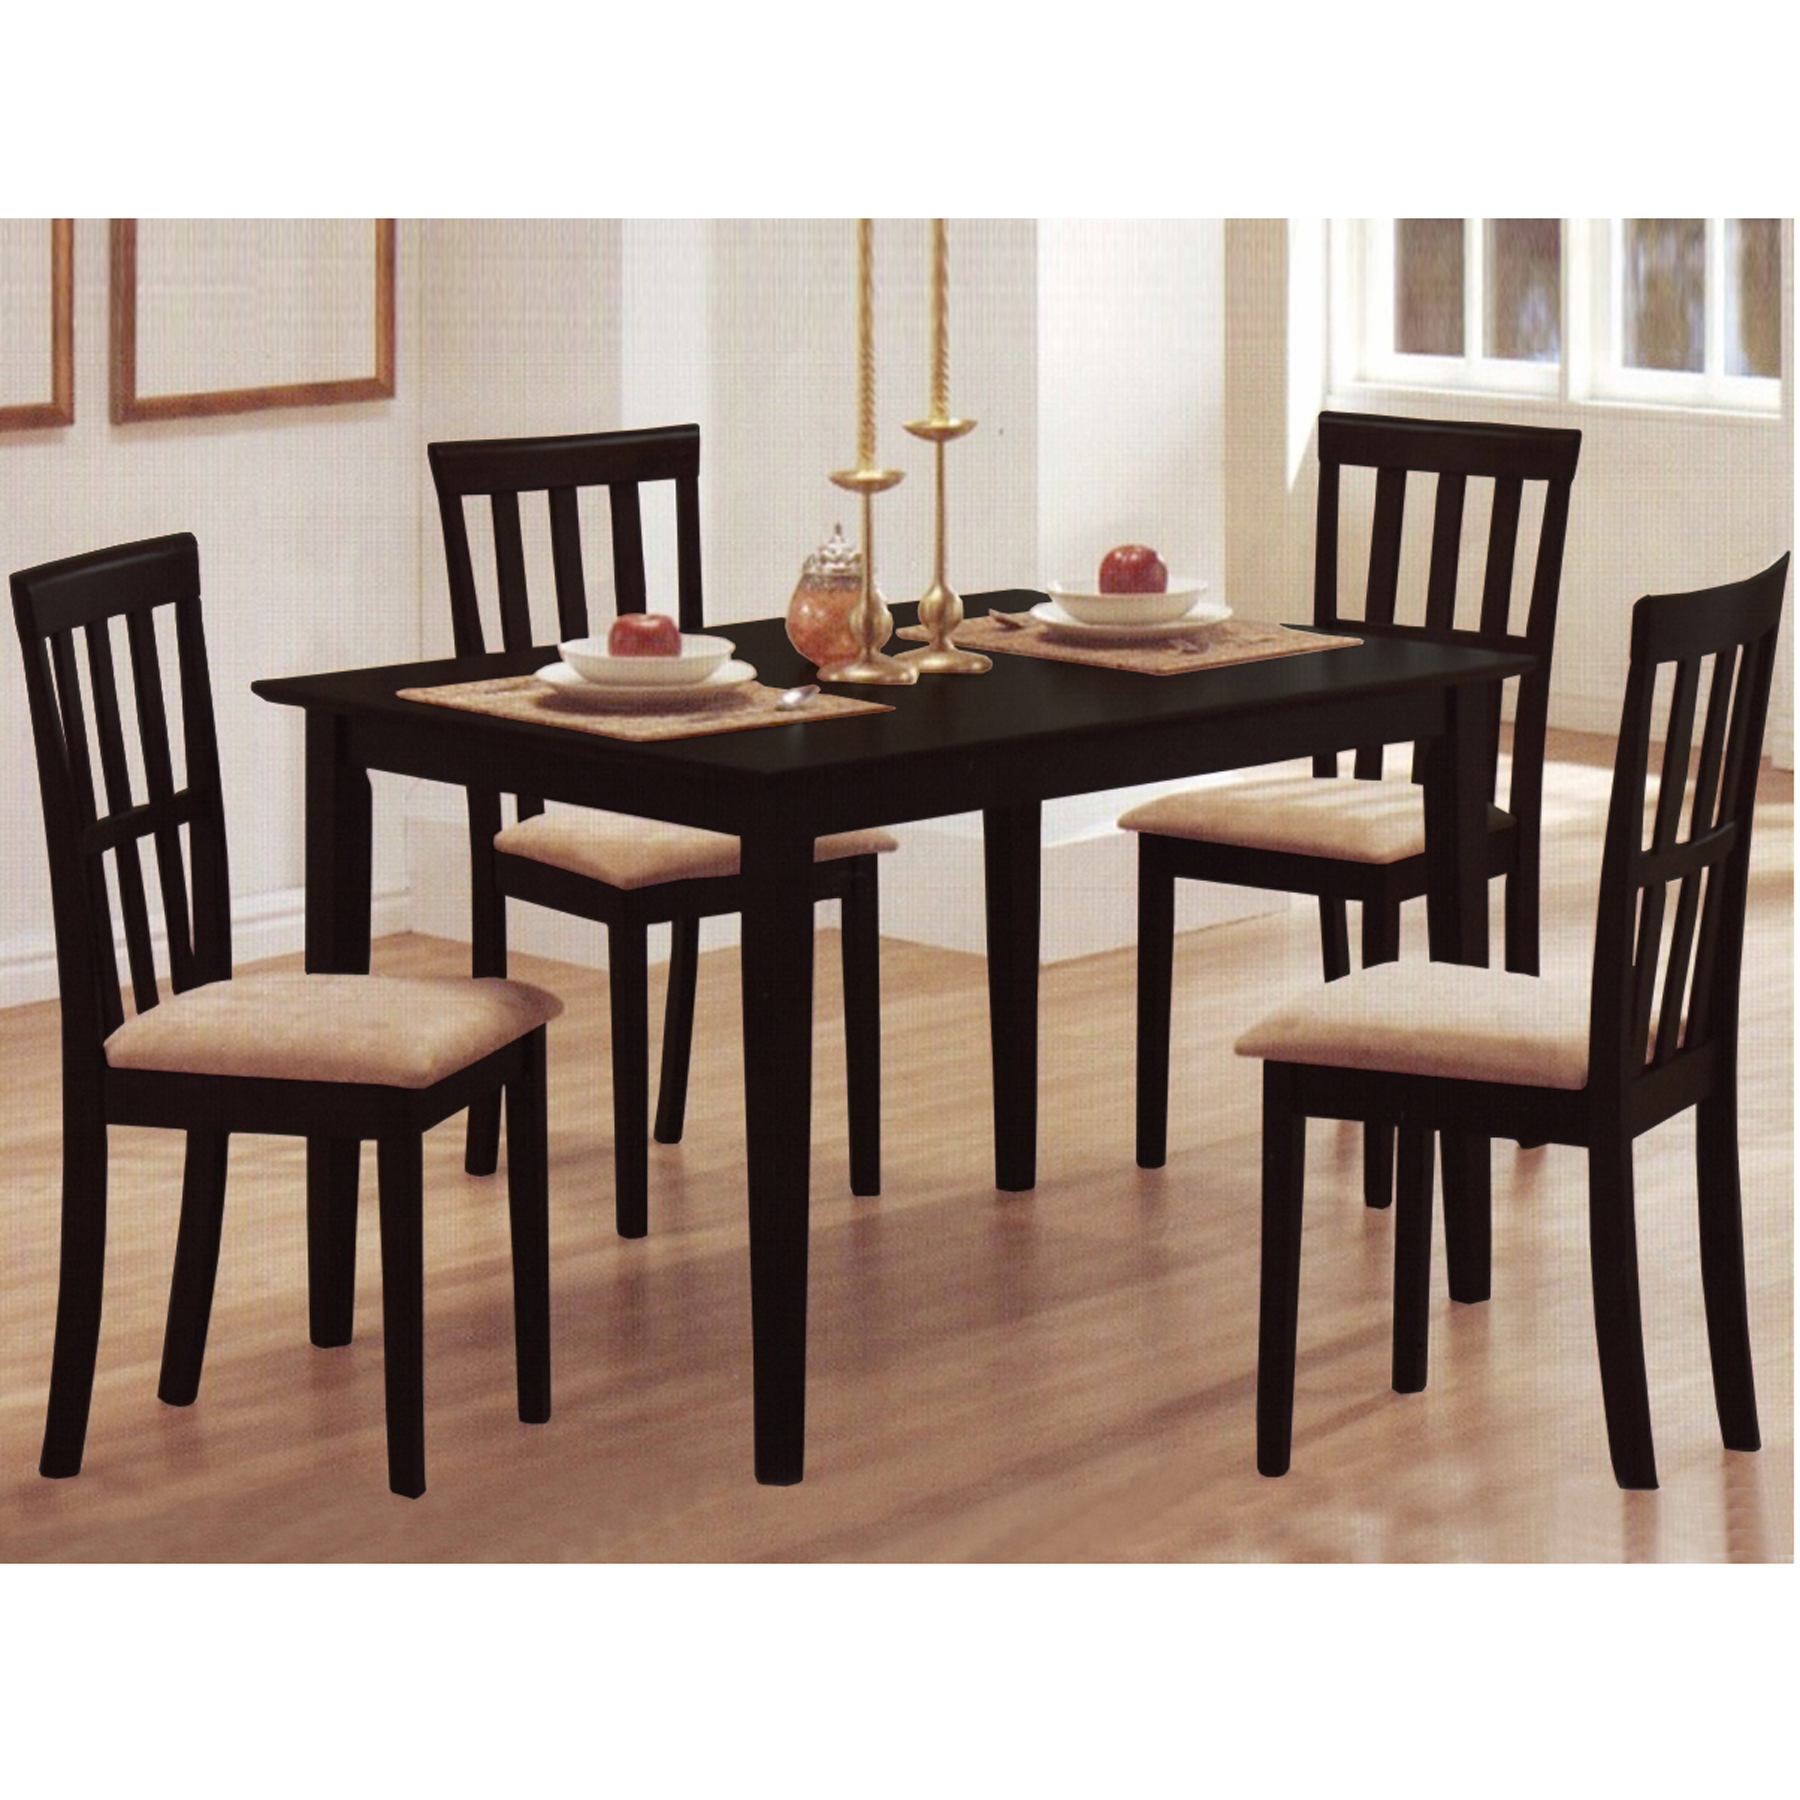 Kmart Dining Chairs Upholstered Dining Room Furniture Kmart